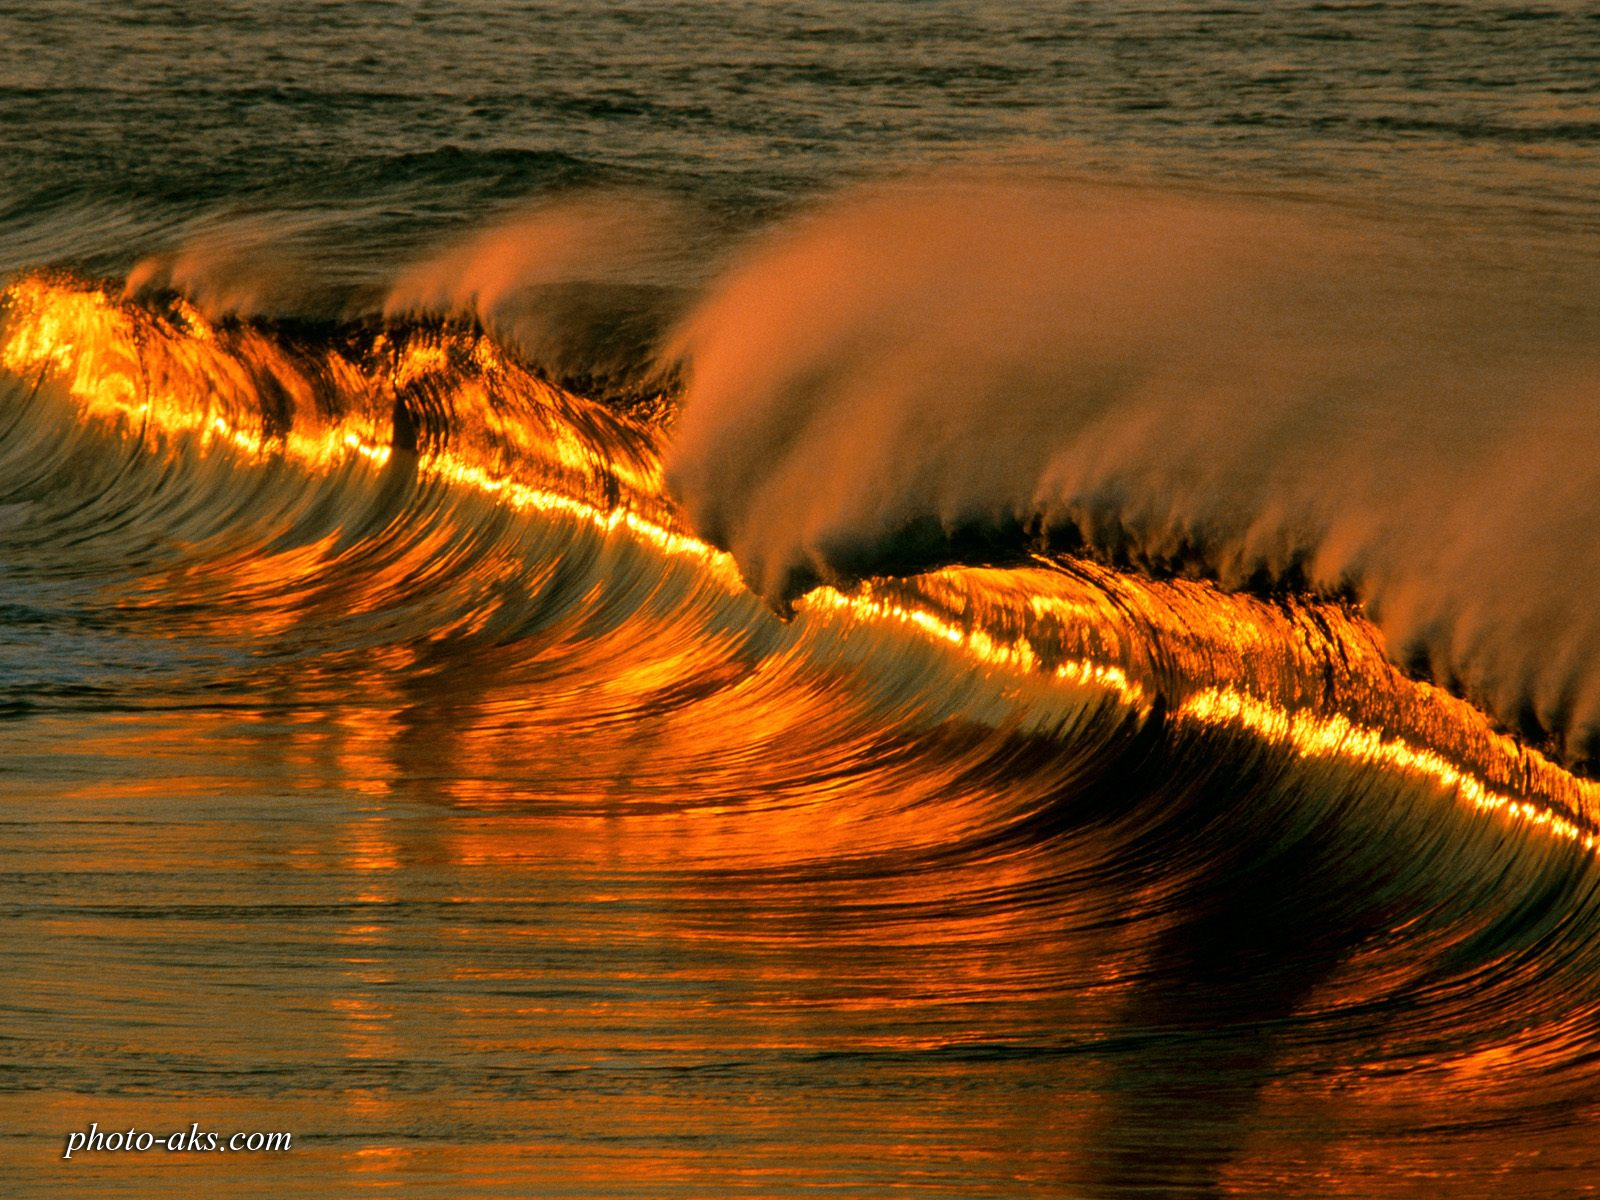 http://pic.photo-aks.com/photo/nature/sea-beach/large/sea-wave.jpg